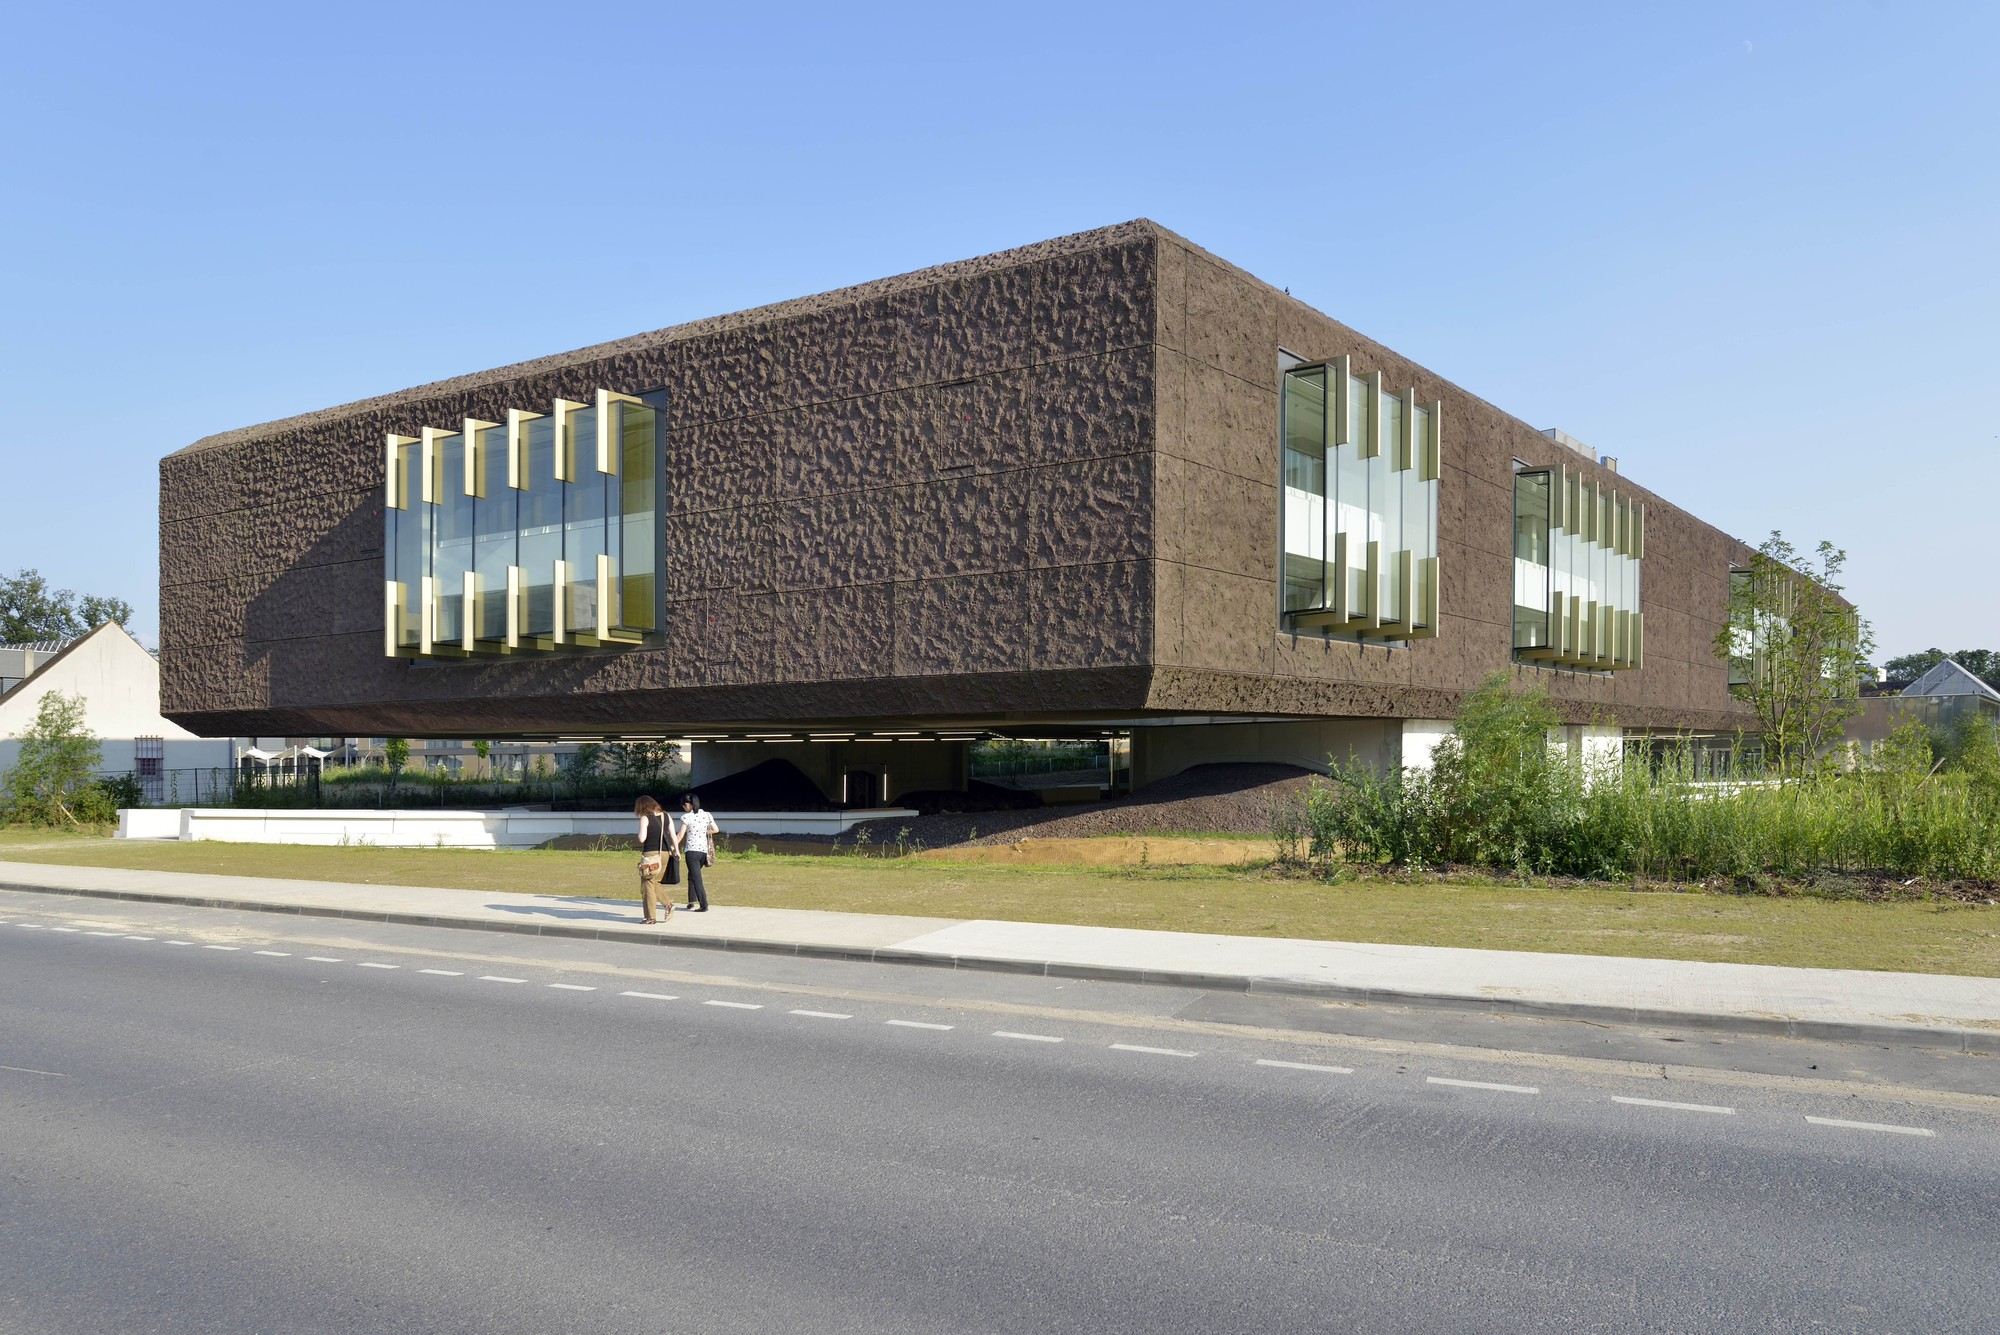 Marne la vall e library beckmann n 39 th p architects for La architecte